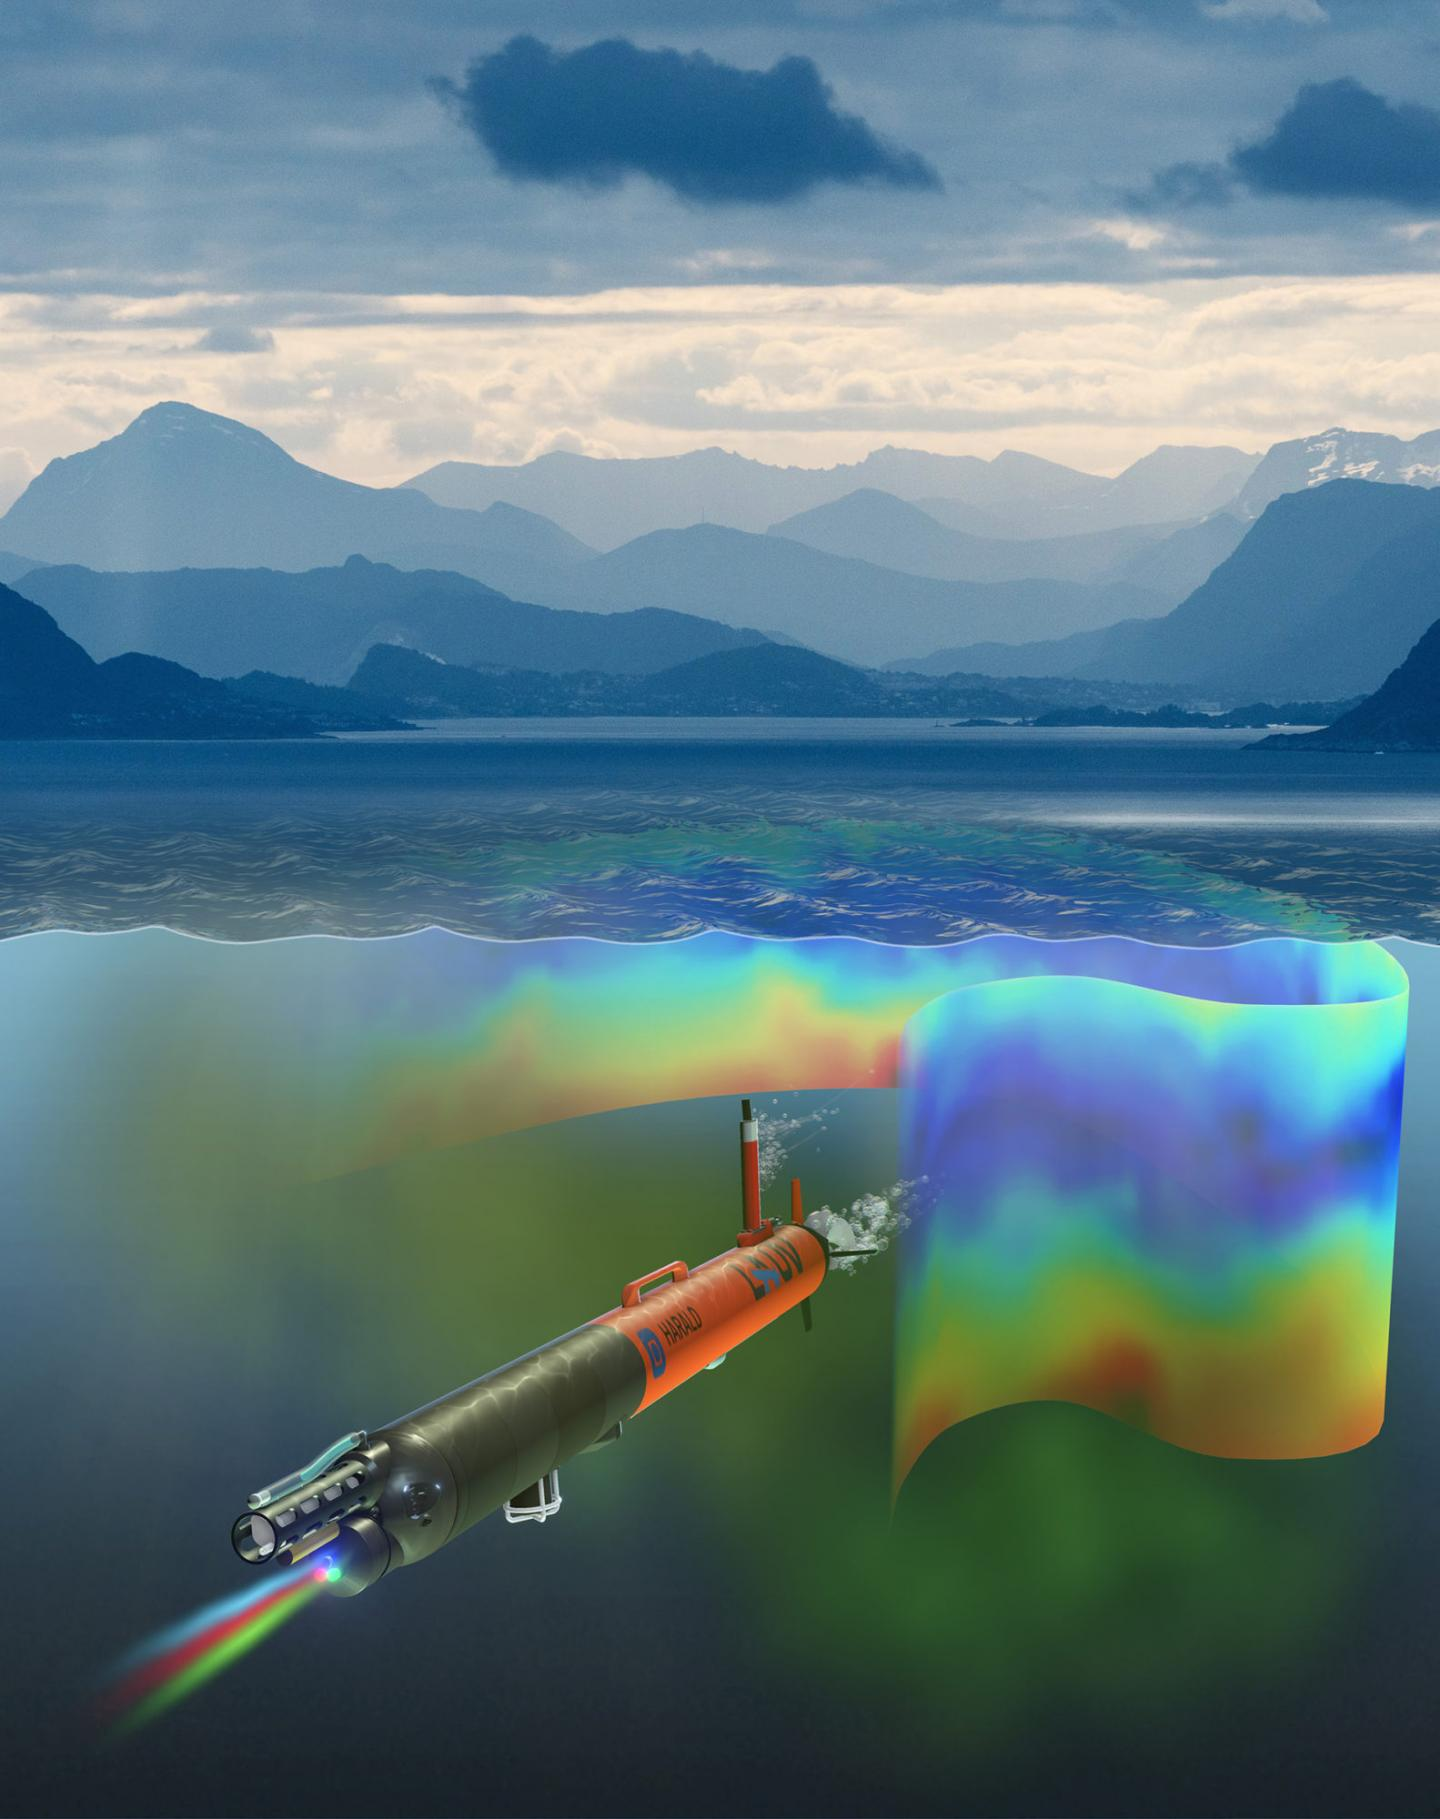 An Artist's Visualization of Harald the AUV